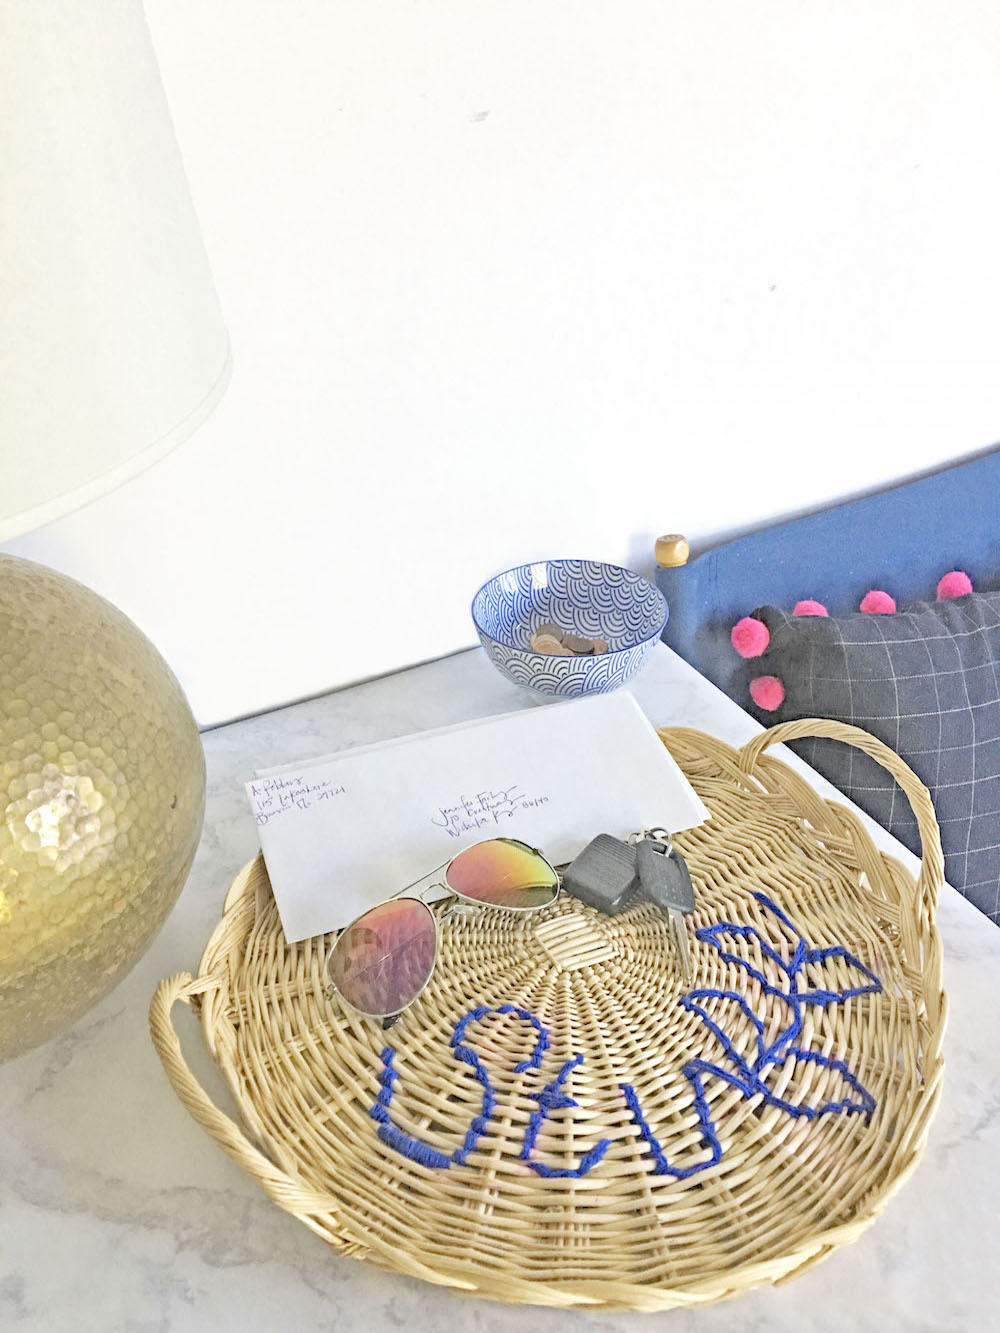 Make It: Upcycle a Thrift Store Basket With Yarn